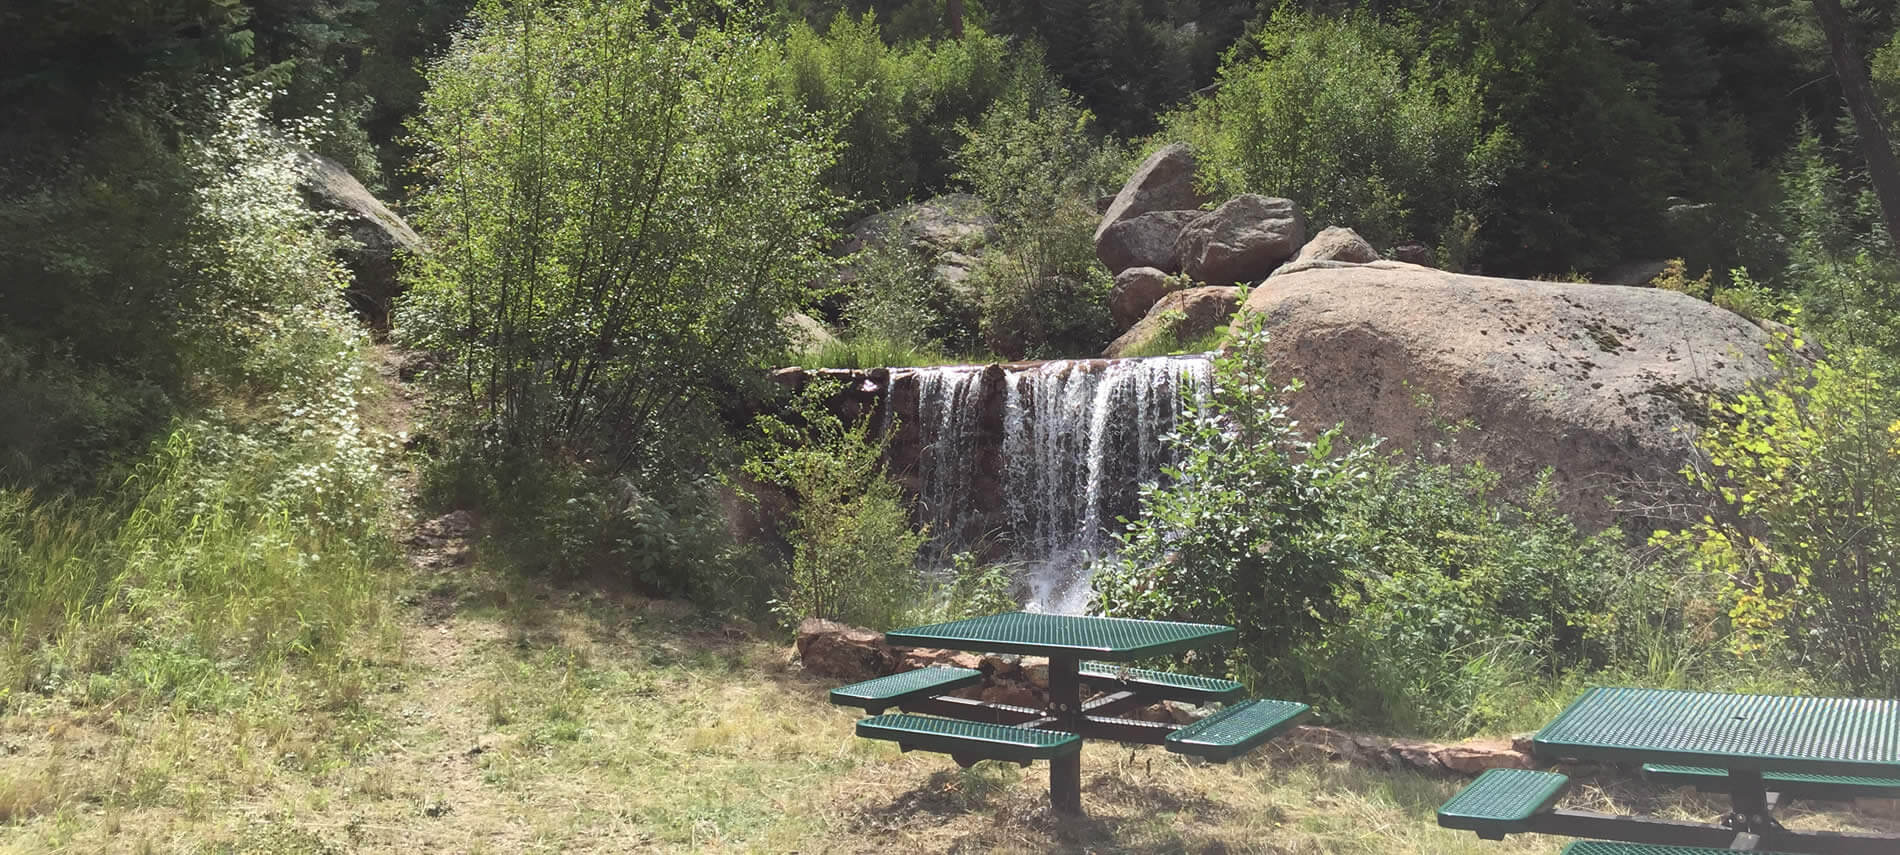 Green picnic tables near a small waterfall surrounded by boulders and greenery.